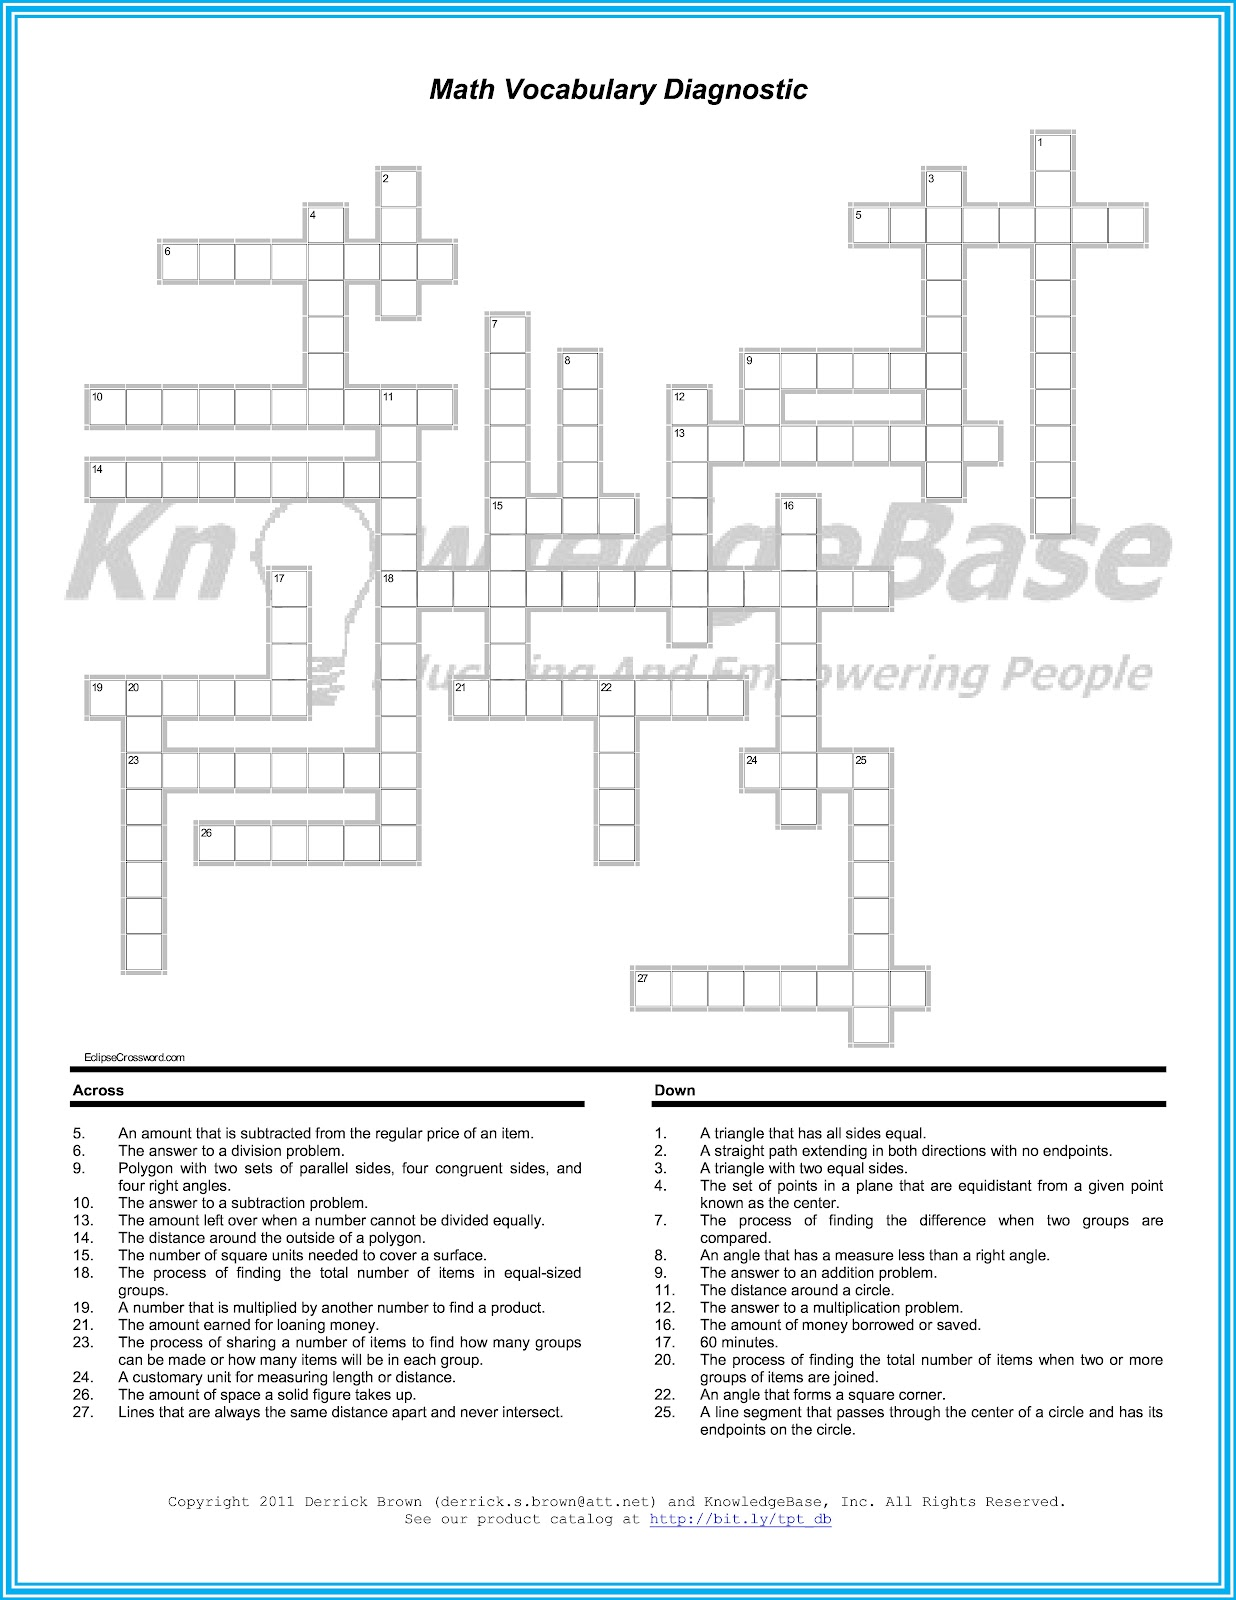 Uncategorized Math Vocabulary Worksheets maths crossword puzzle with solution aprita com delighted free algebra lessons and worksheets big beginners shaped introduction to introduction